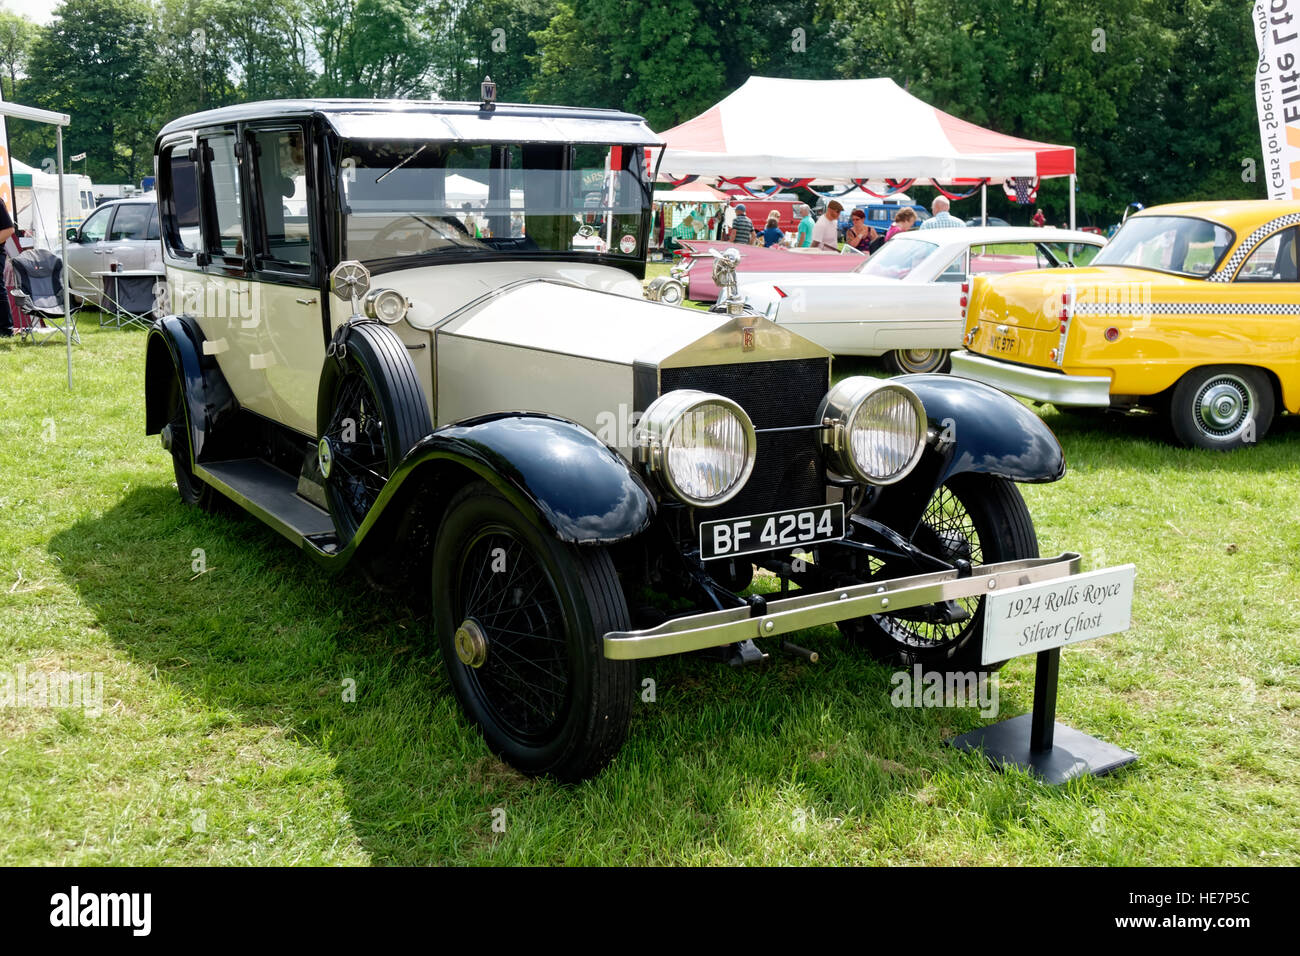 Un 1924 Rolls Royce Silver Ghost sur le 2014 Stockton Nostalgie Show, Wiltshire, Royaume-Uni. Photo Stock